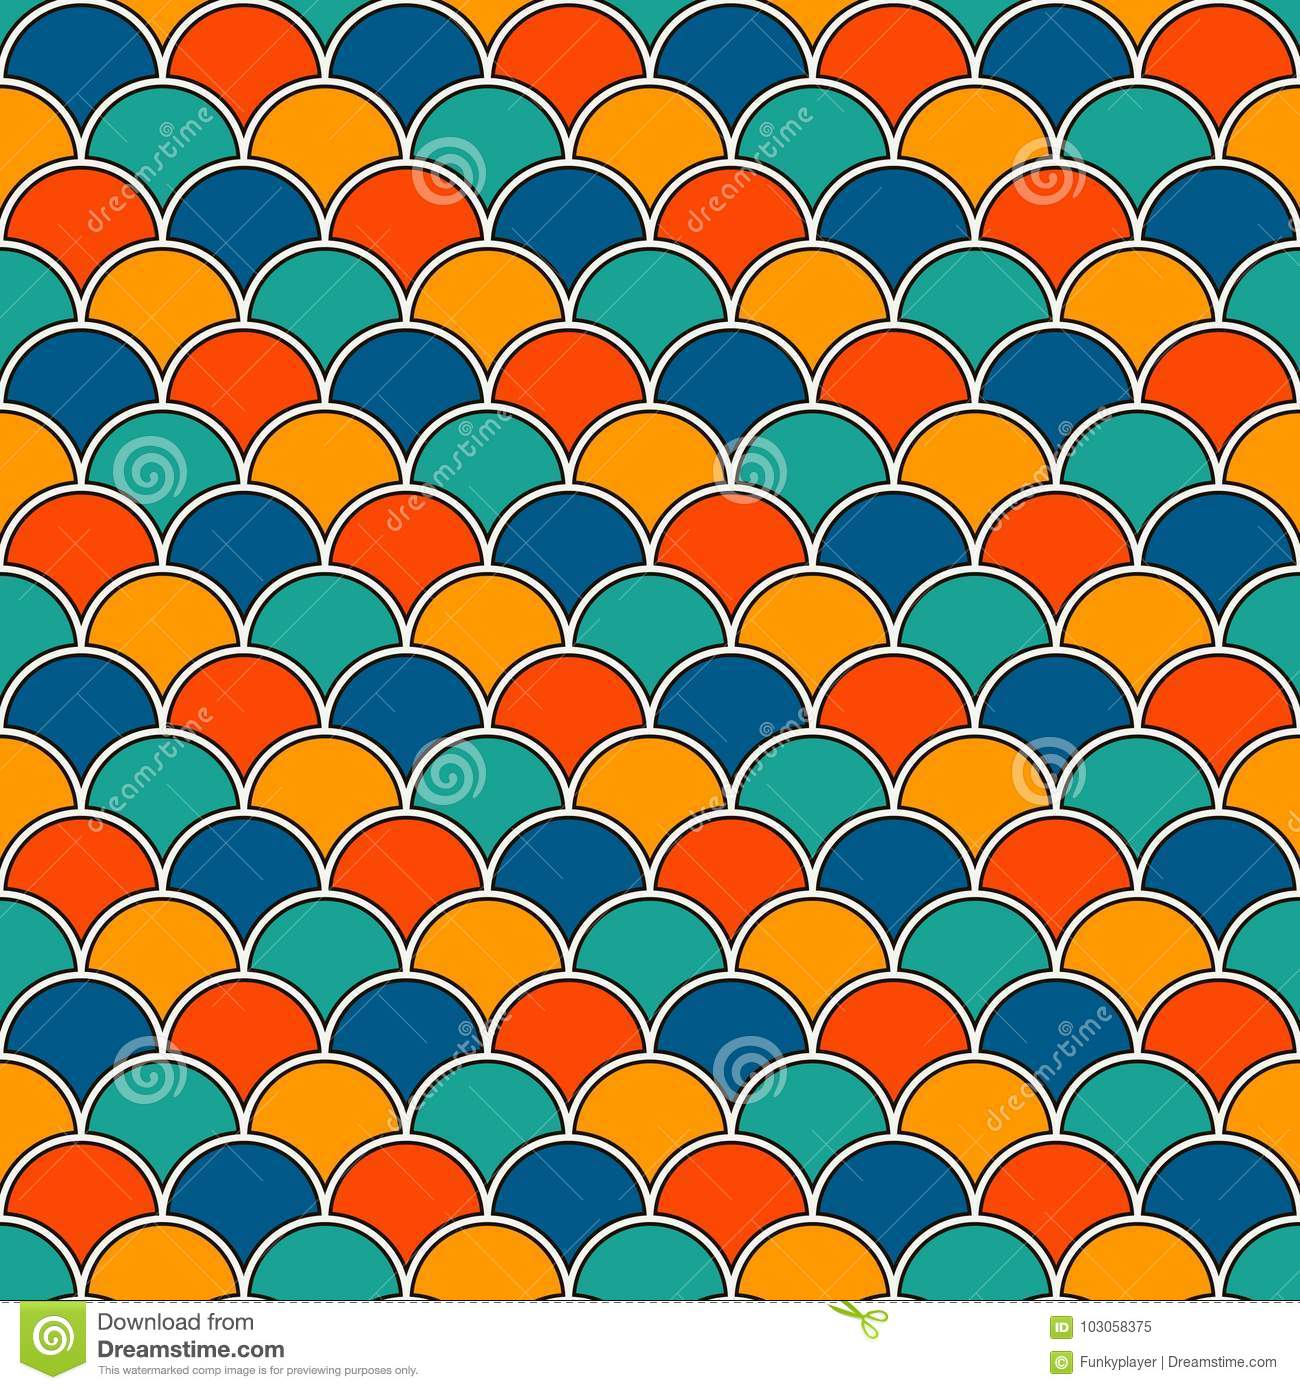 Asian traditional ornament with repeated scallops. Seamless pattern with  vivid semicircles.